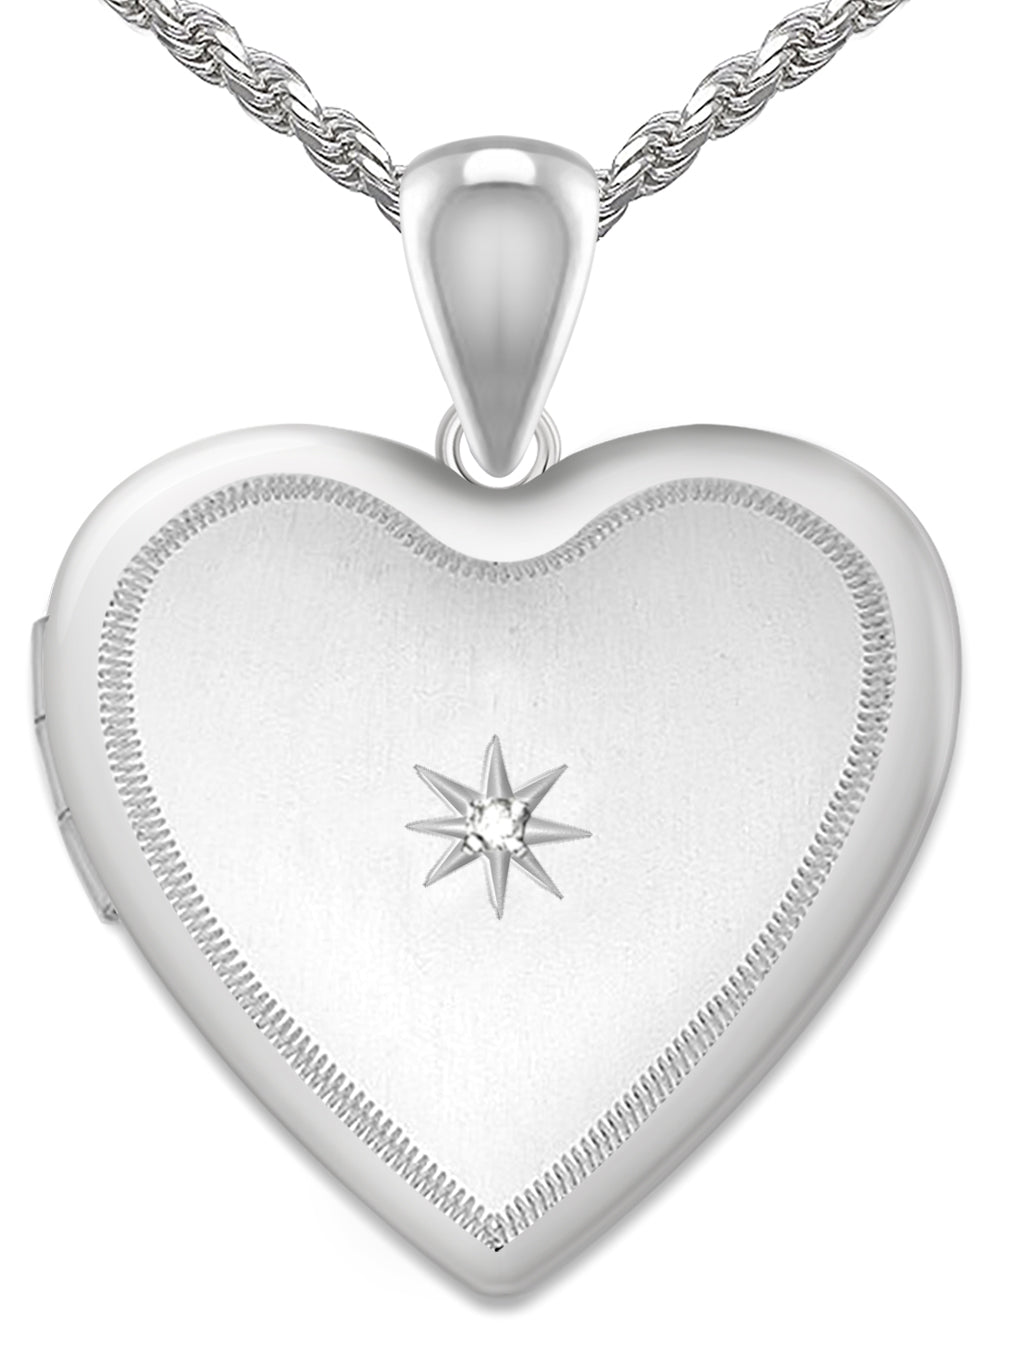 Diamond Necklace - Heart Locket With 2 Photo For Ladies